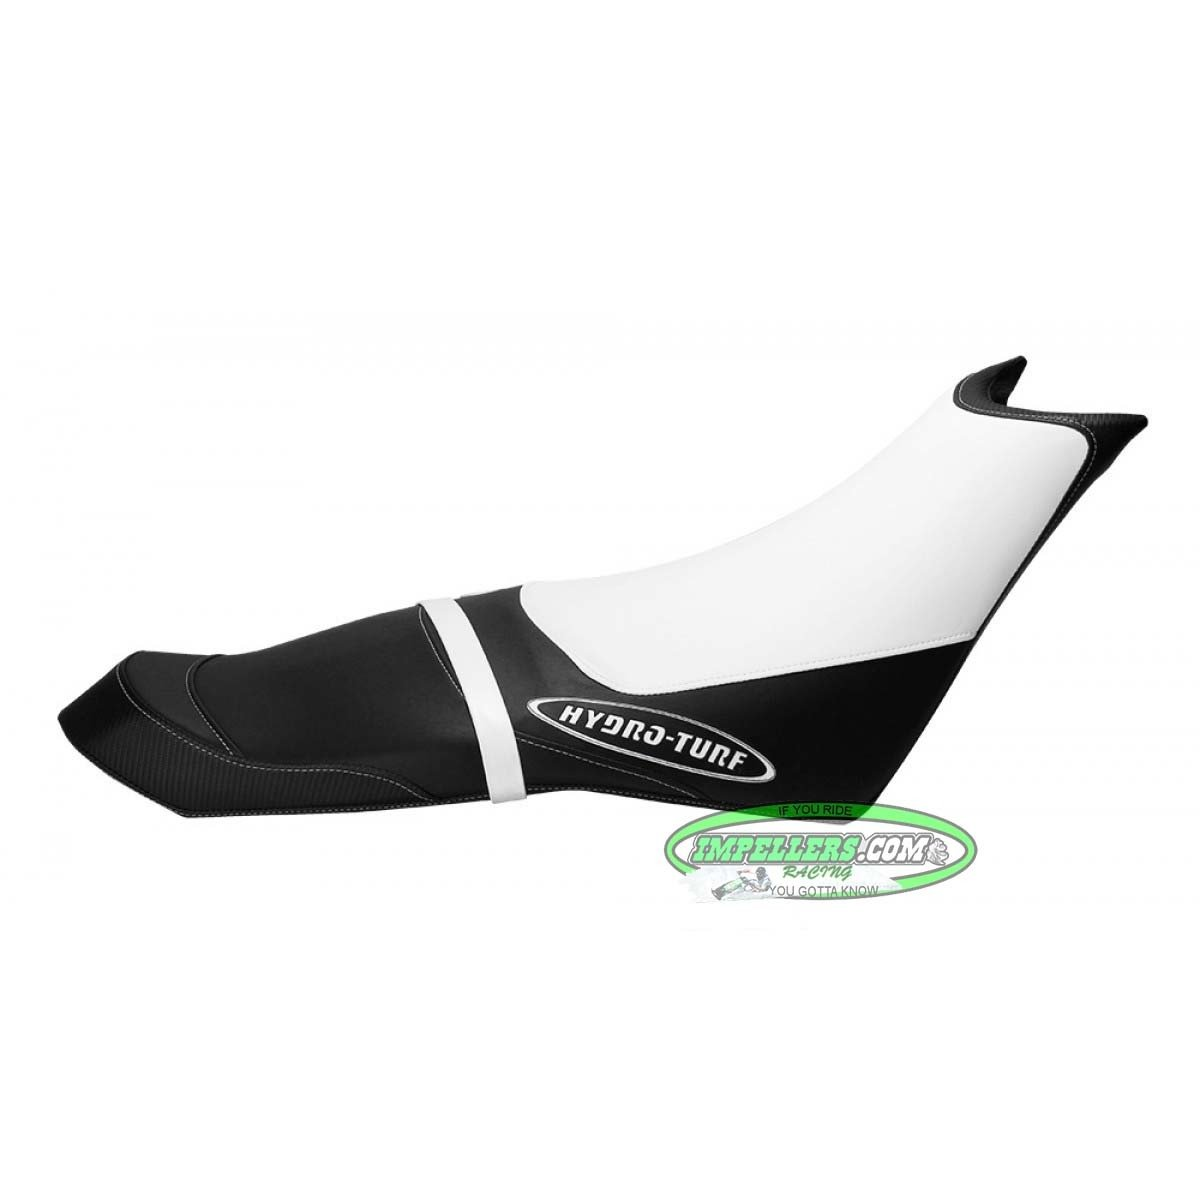 Sea Doo Spark Seat Cover 2014-16 2 Seater